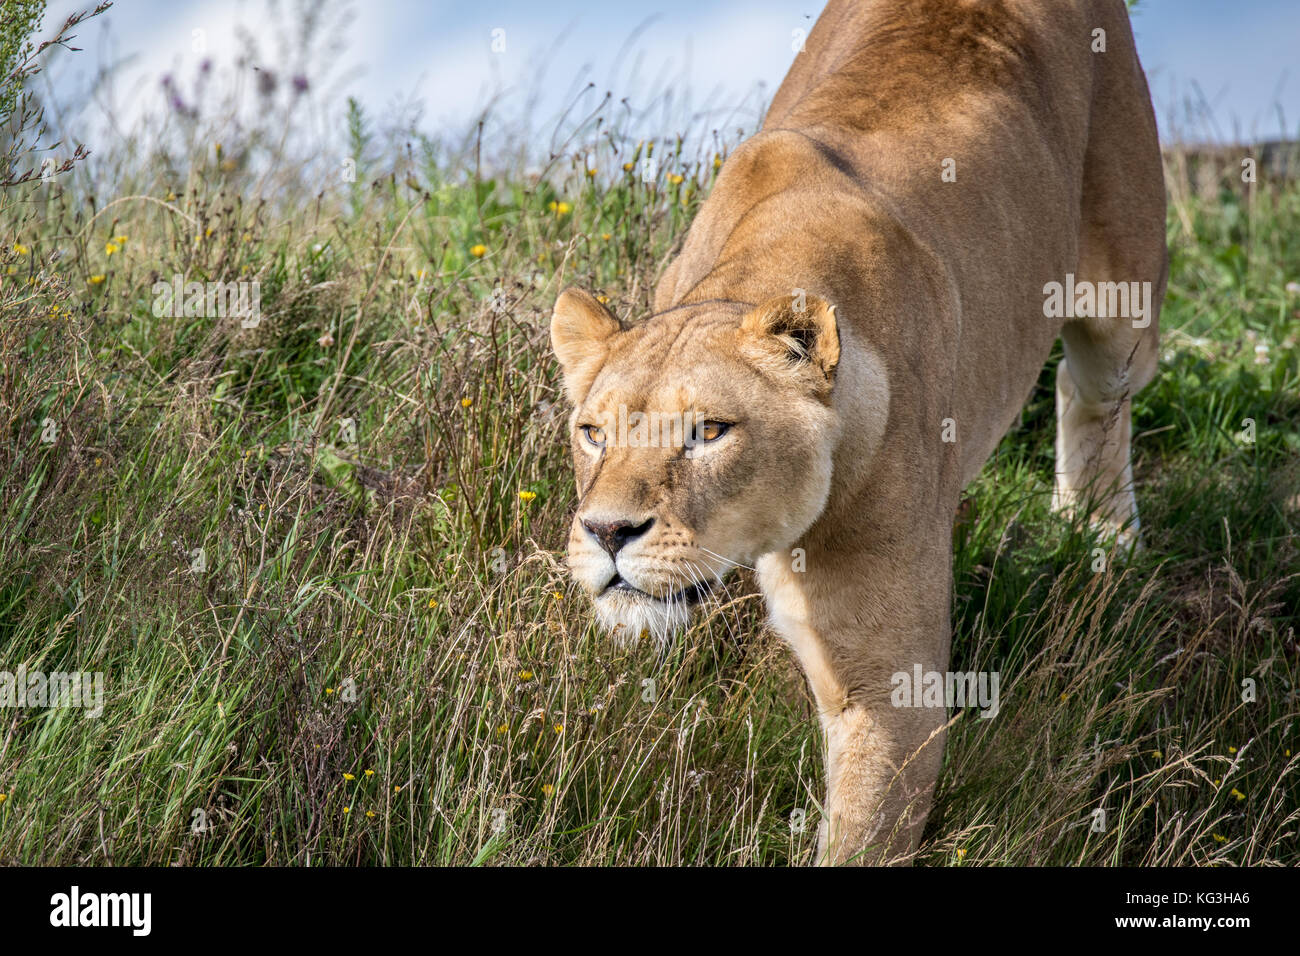 A lioness stalks another lion at the Yorkshire Wildlife Park - Stock Image